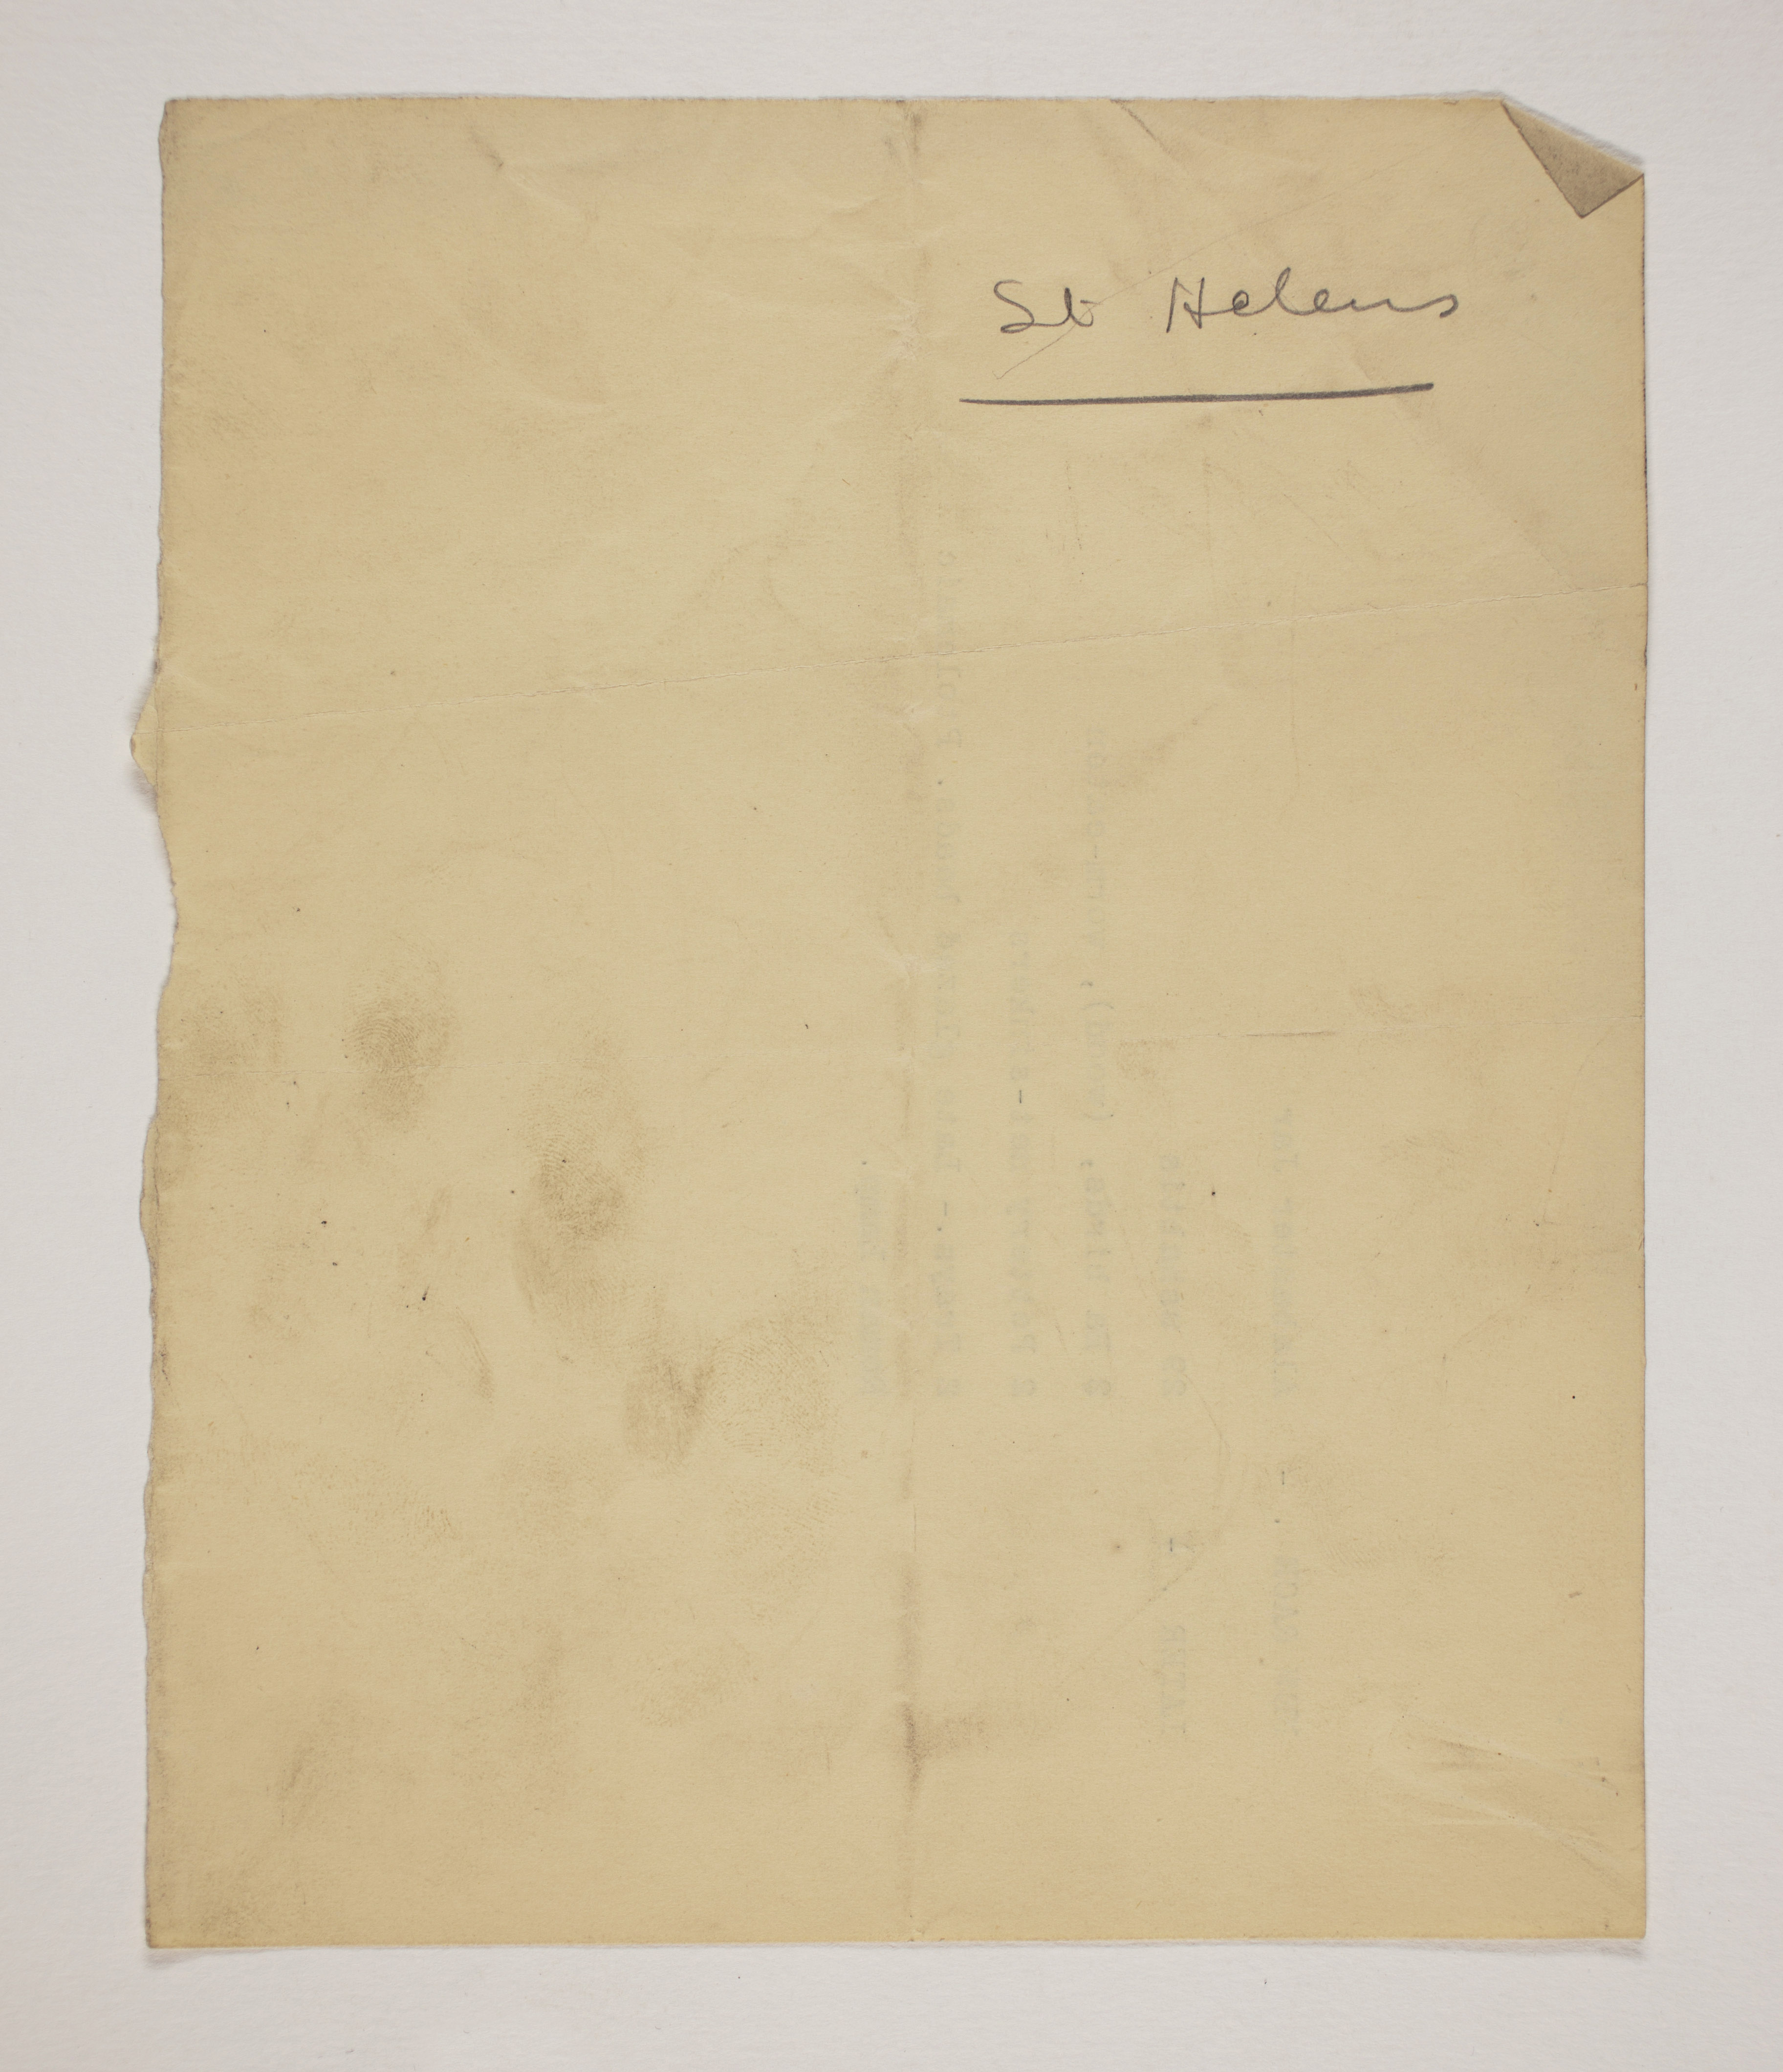 1899-1900 Abydos Receipt from institution PMA/WFP1/D/8/8.3